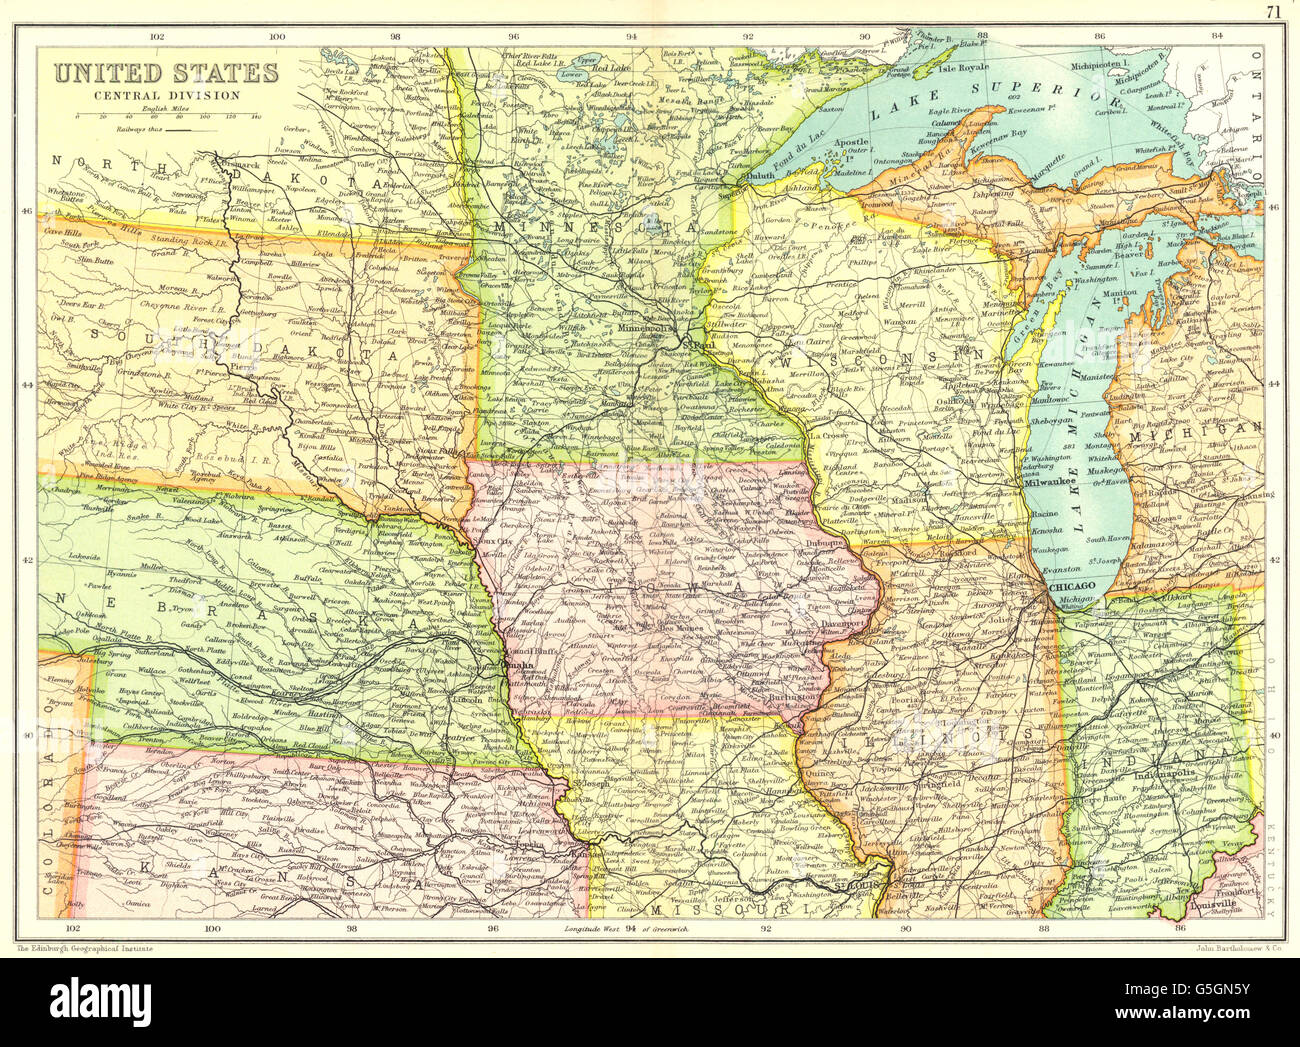 Geographical Map Of United States.Usa Midwest United States Physical Showing Railways Cassells